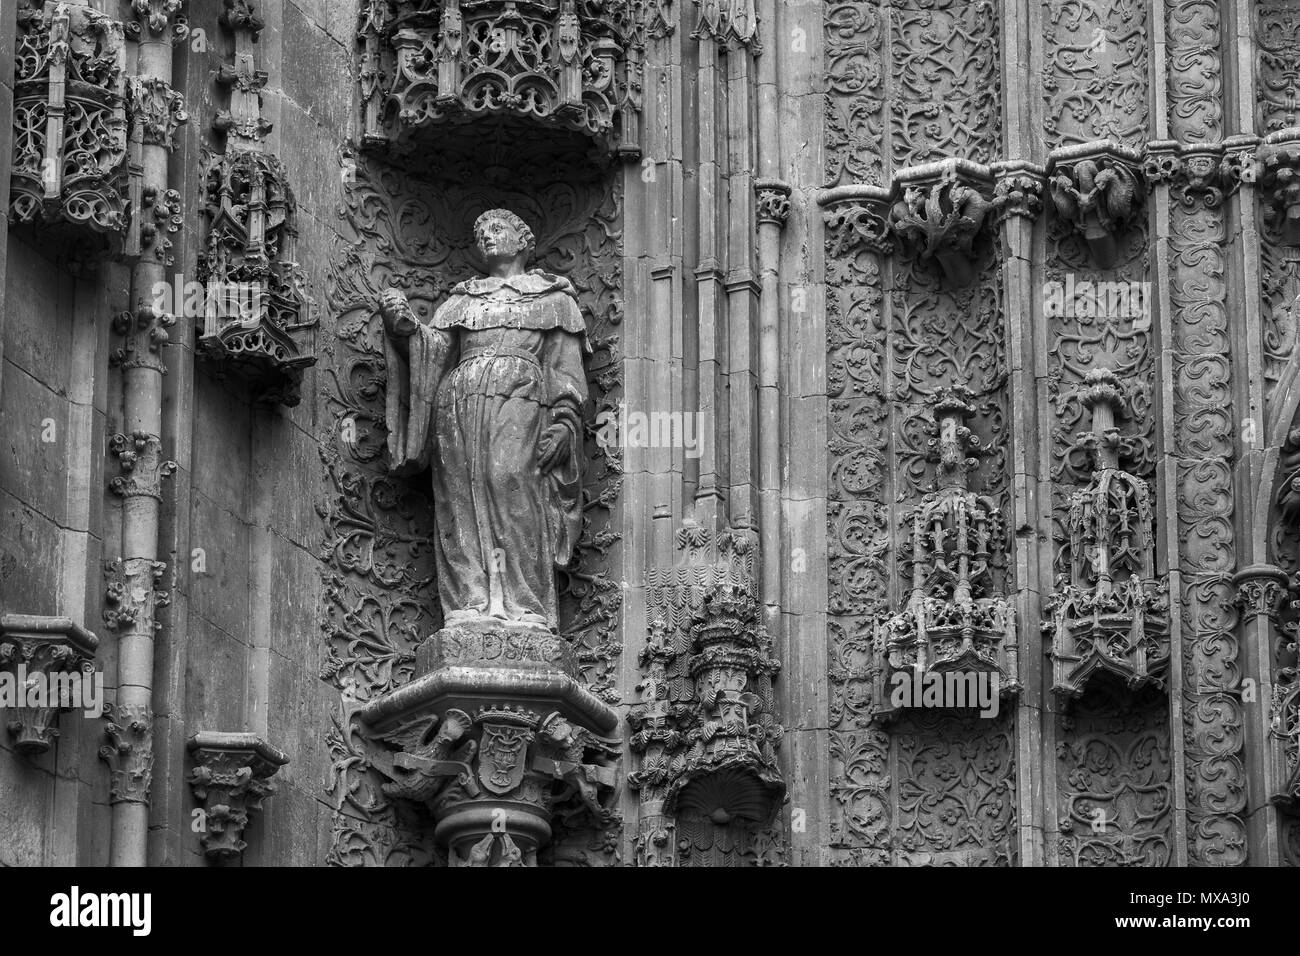 Architectural details on the exterior of the Cathedral in Salamanca. Spain. - Stock Image